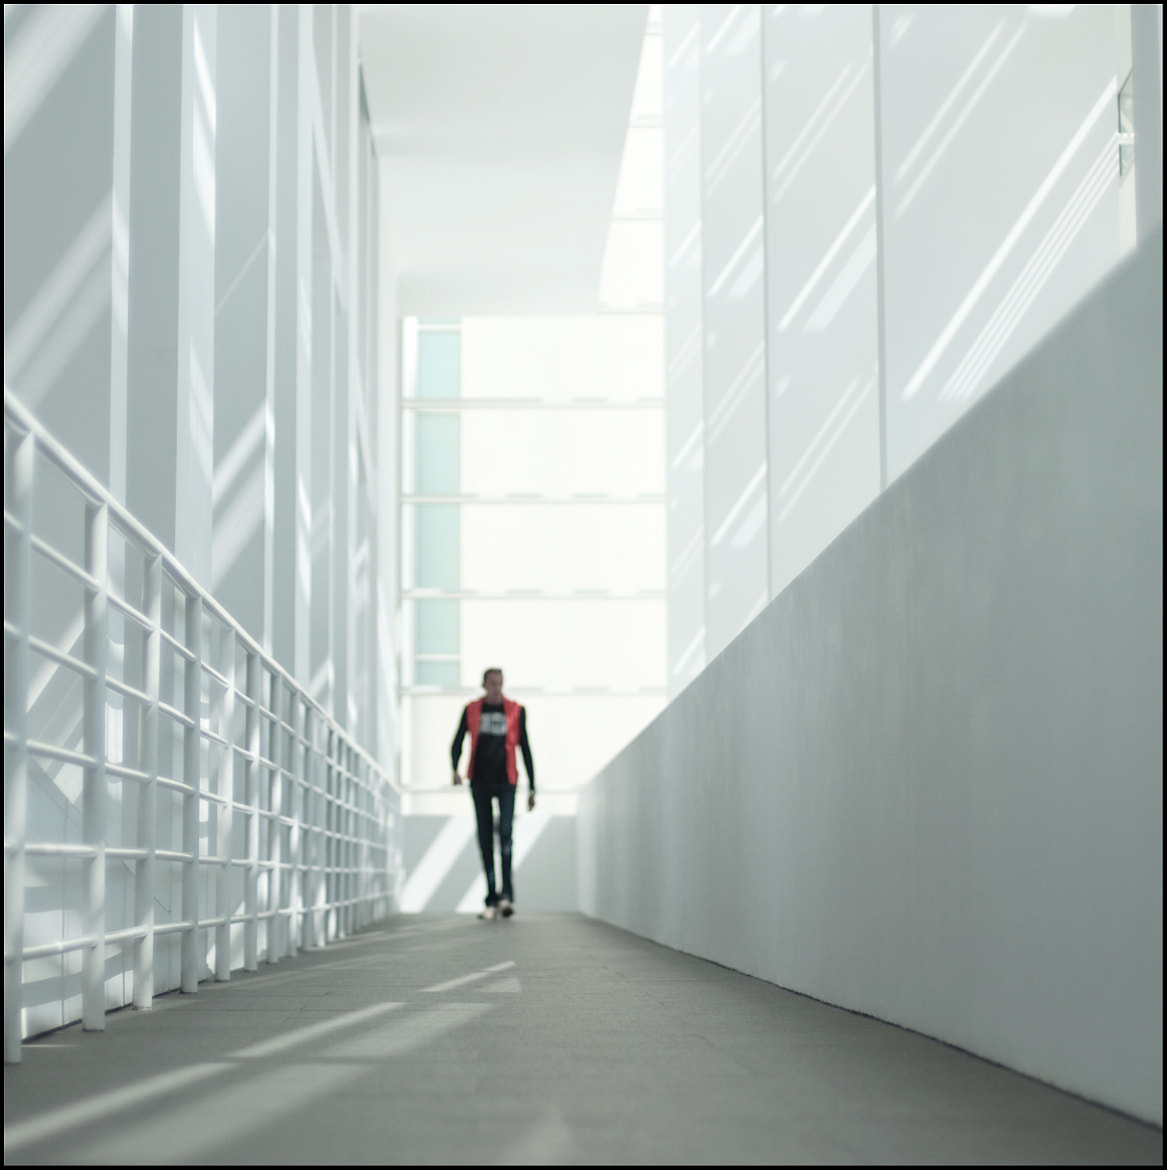 Photograph Stranger at Macba by andr3u on 500px